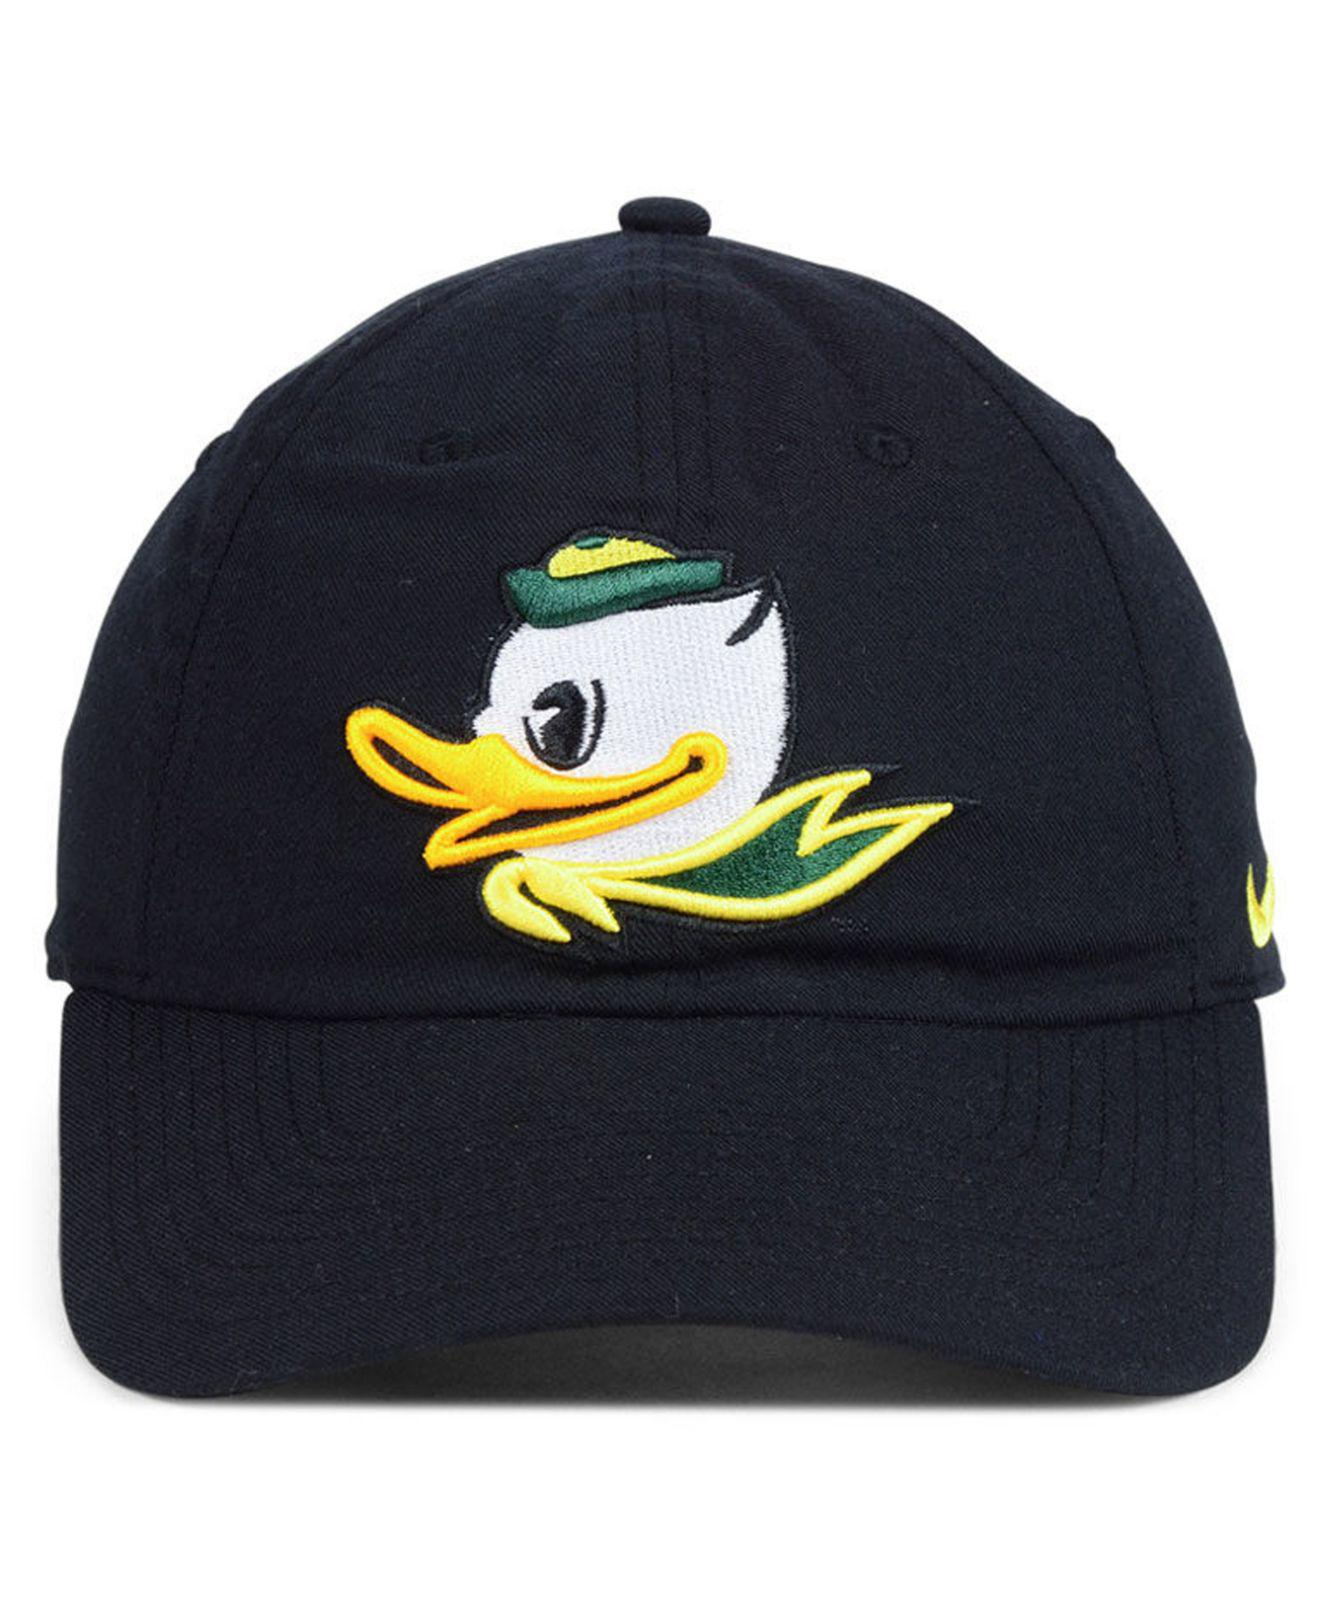 new style 64213 dec7d ... italy lyst nike oregon ducks core easy adjustable strapback cap in black  for men b5032 643a2 ...